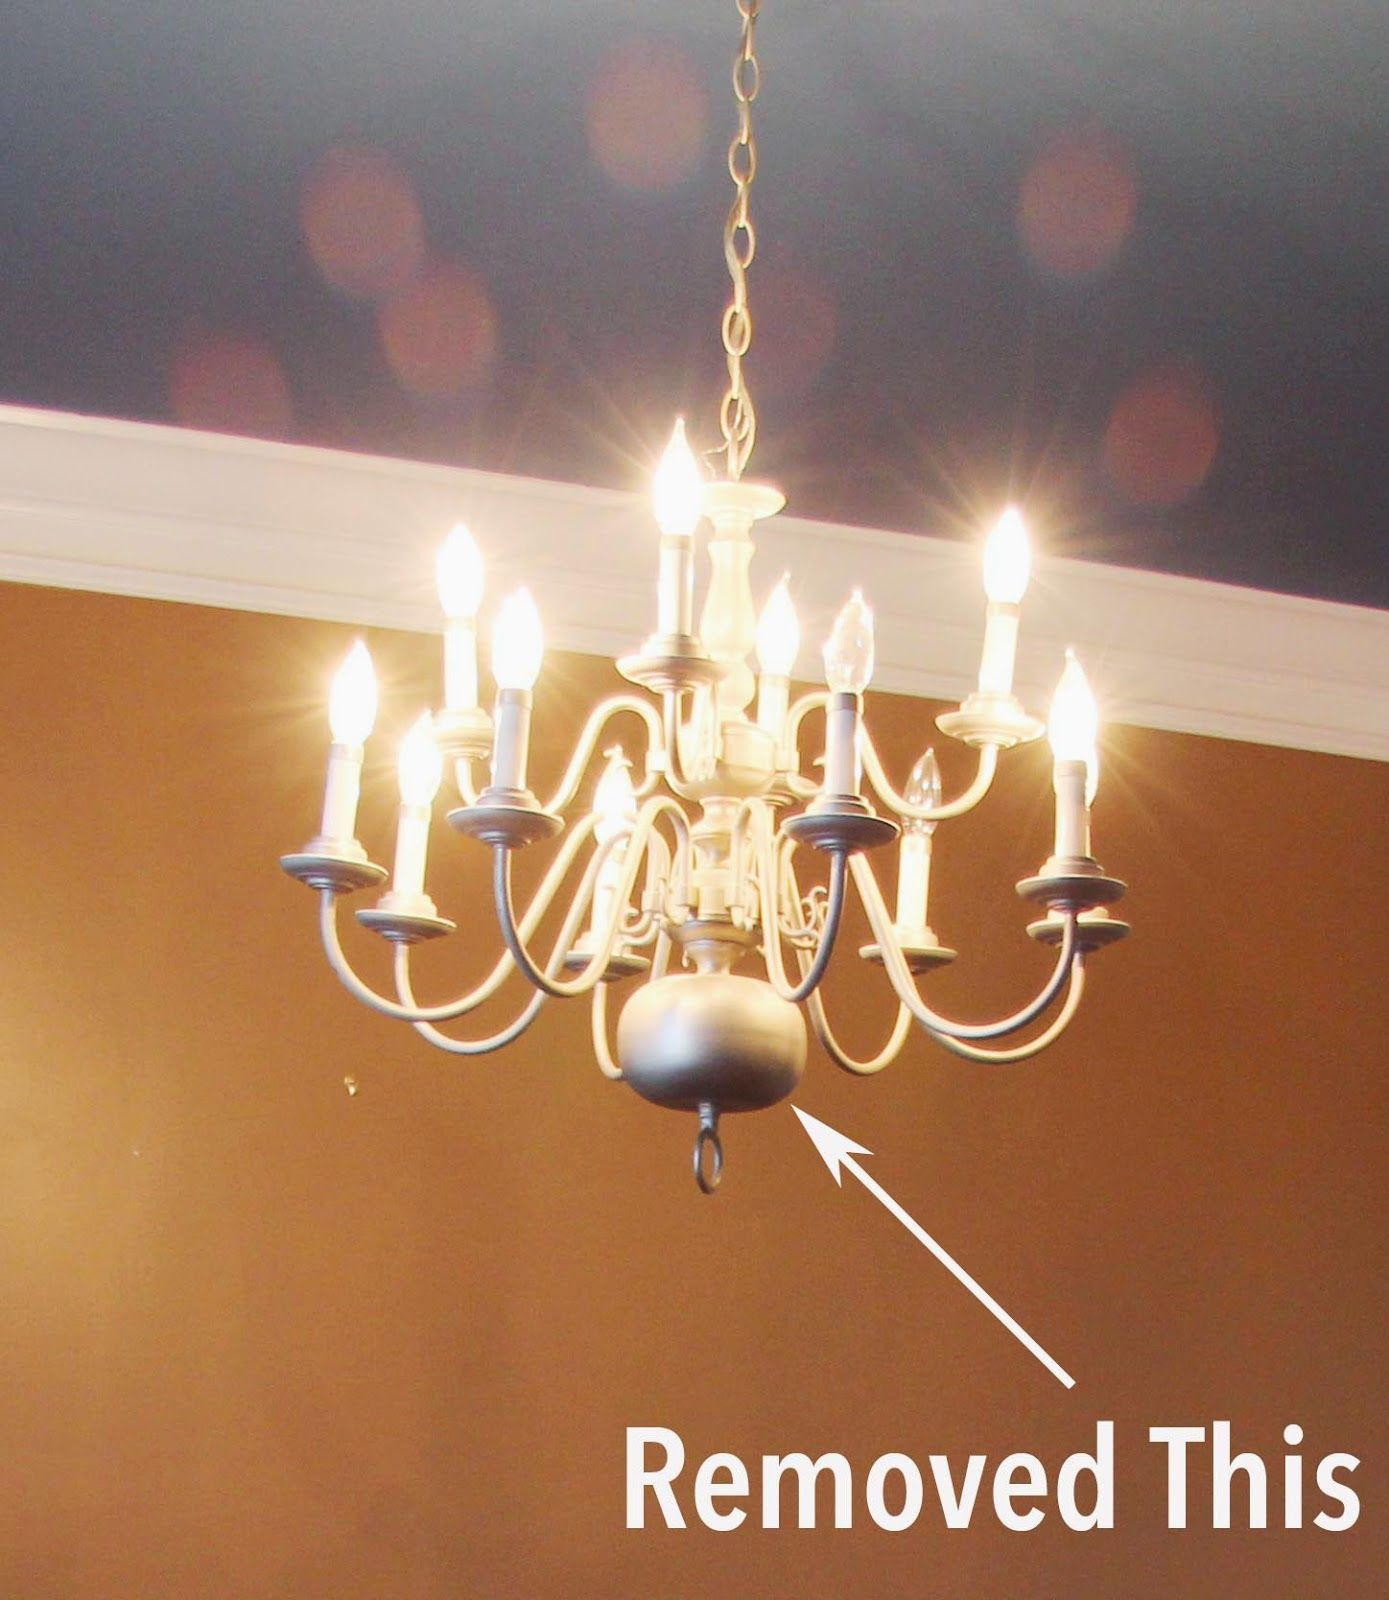 Paper Daisy Designs Chandelier Makeover in minutes